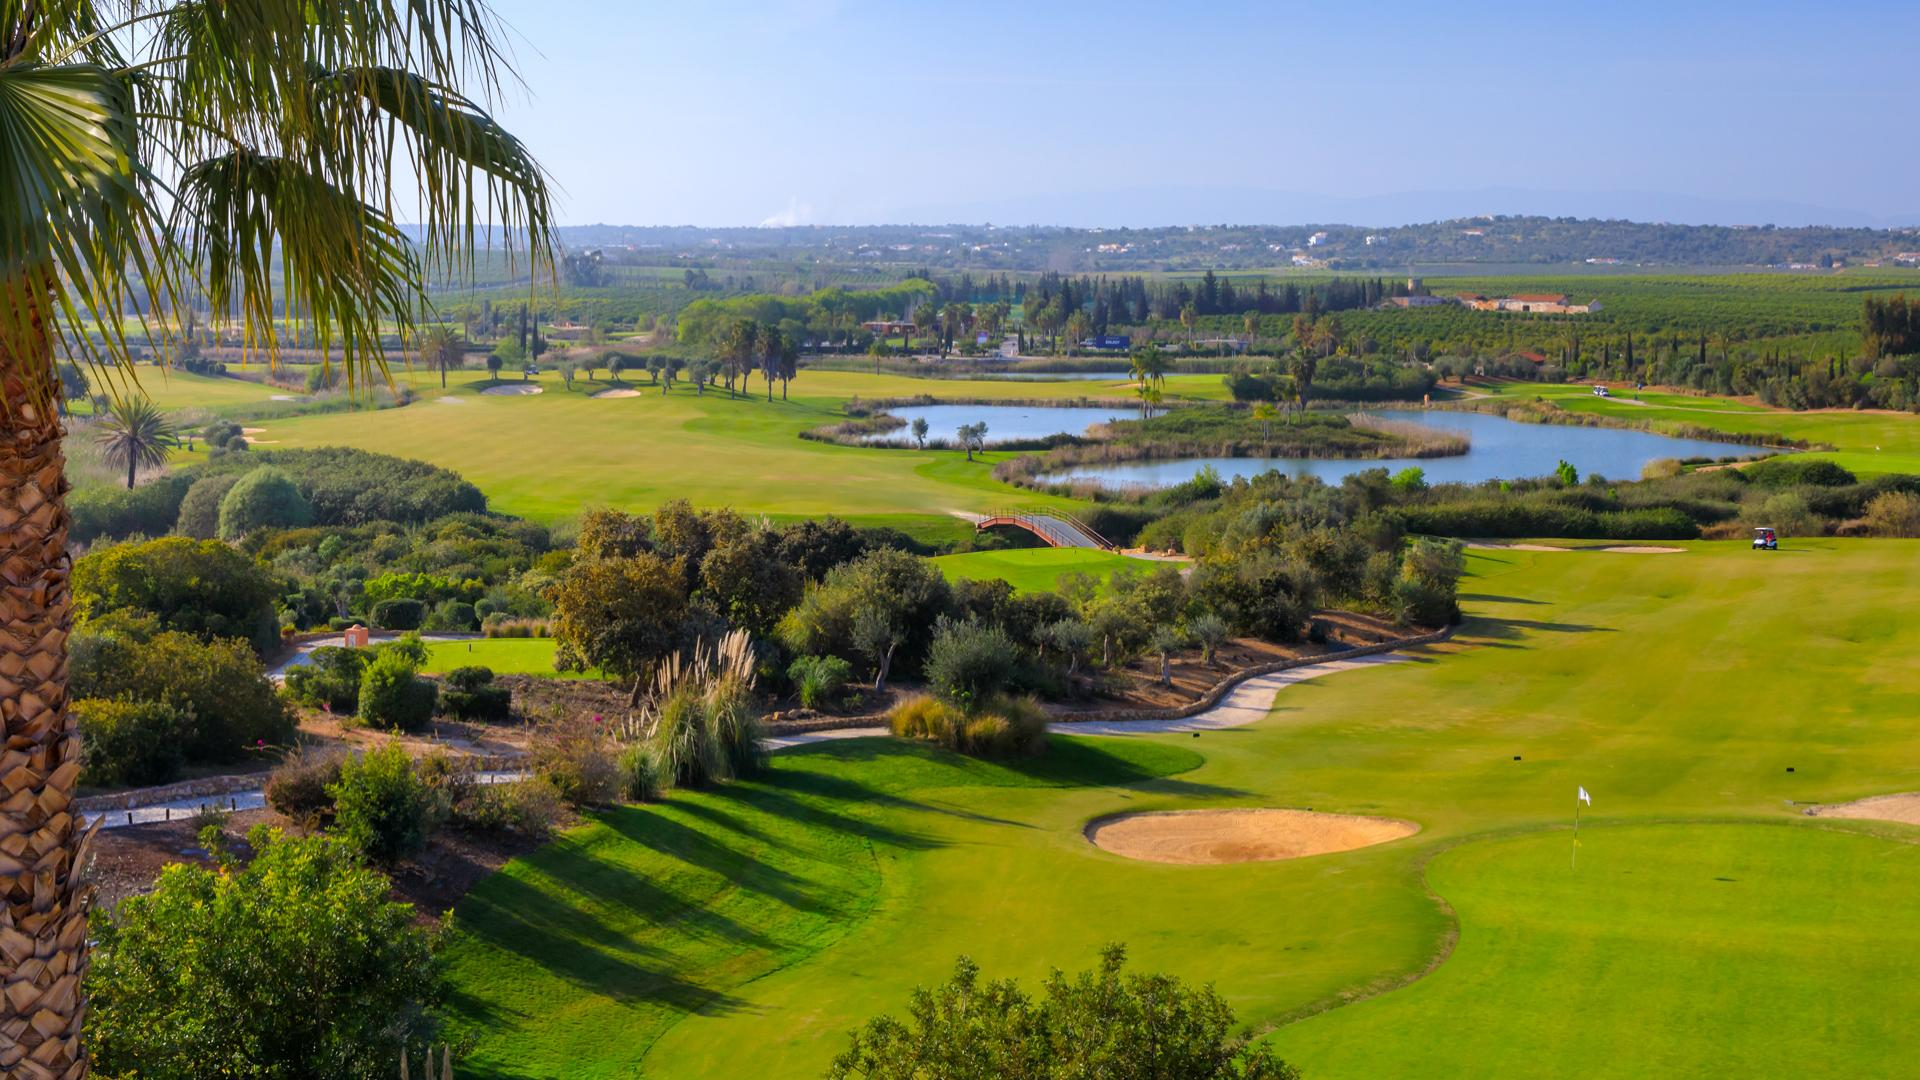 Algarve Holidays: Top 5 Safest Activities